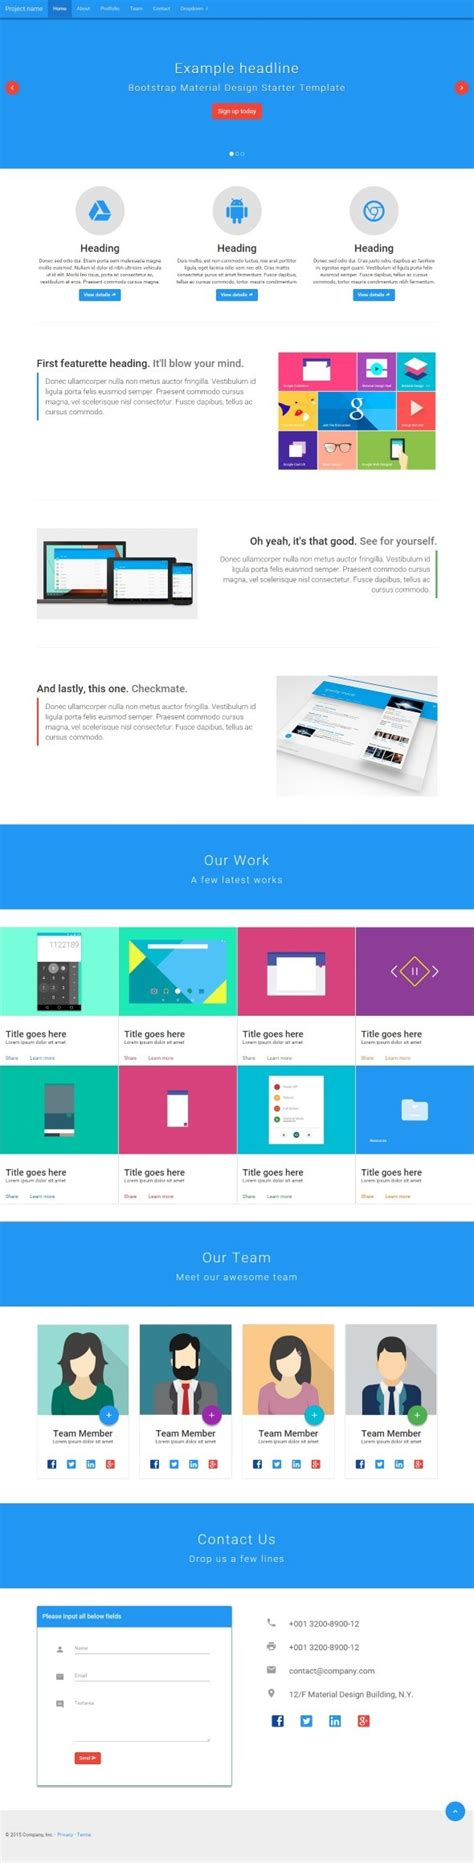 Bootstrap Card Layout Template by Bmd Bootstrap Material Design By Design Codecanyon